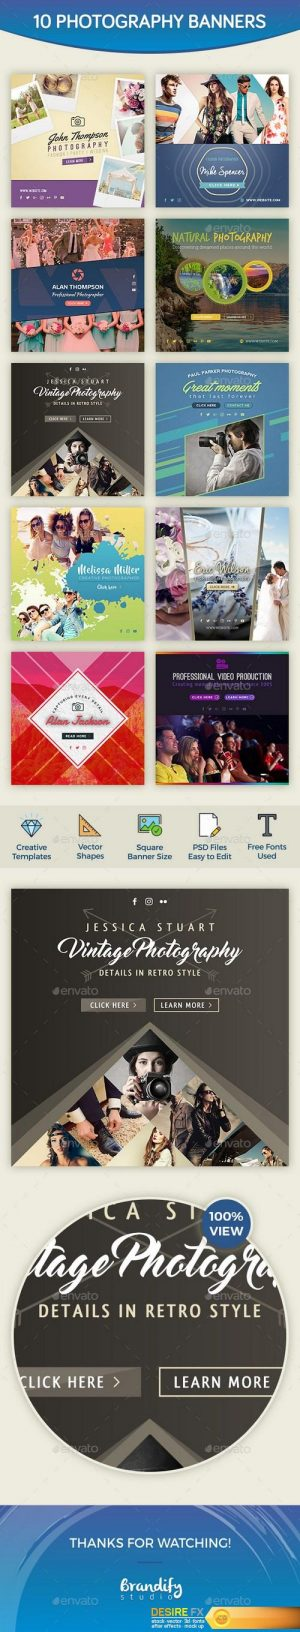 GraphicRiver Photography Banners 18893389